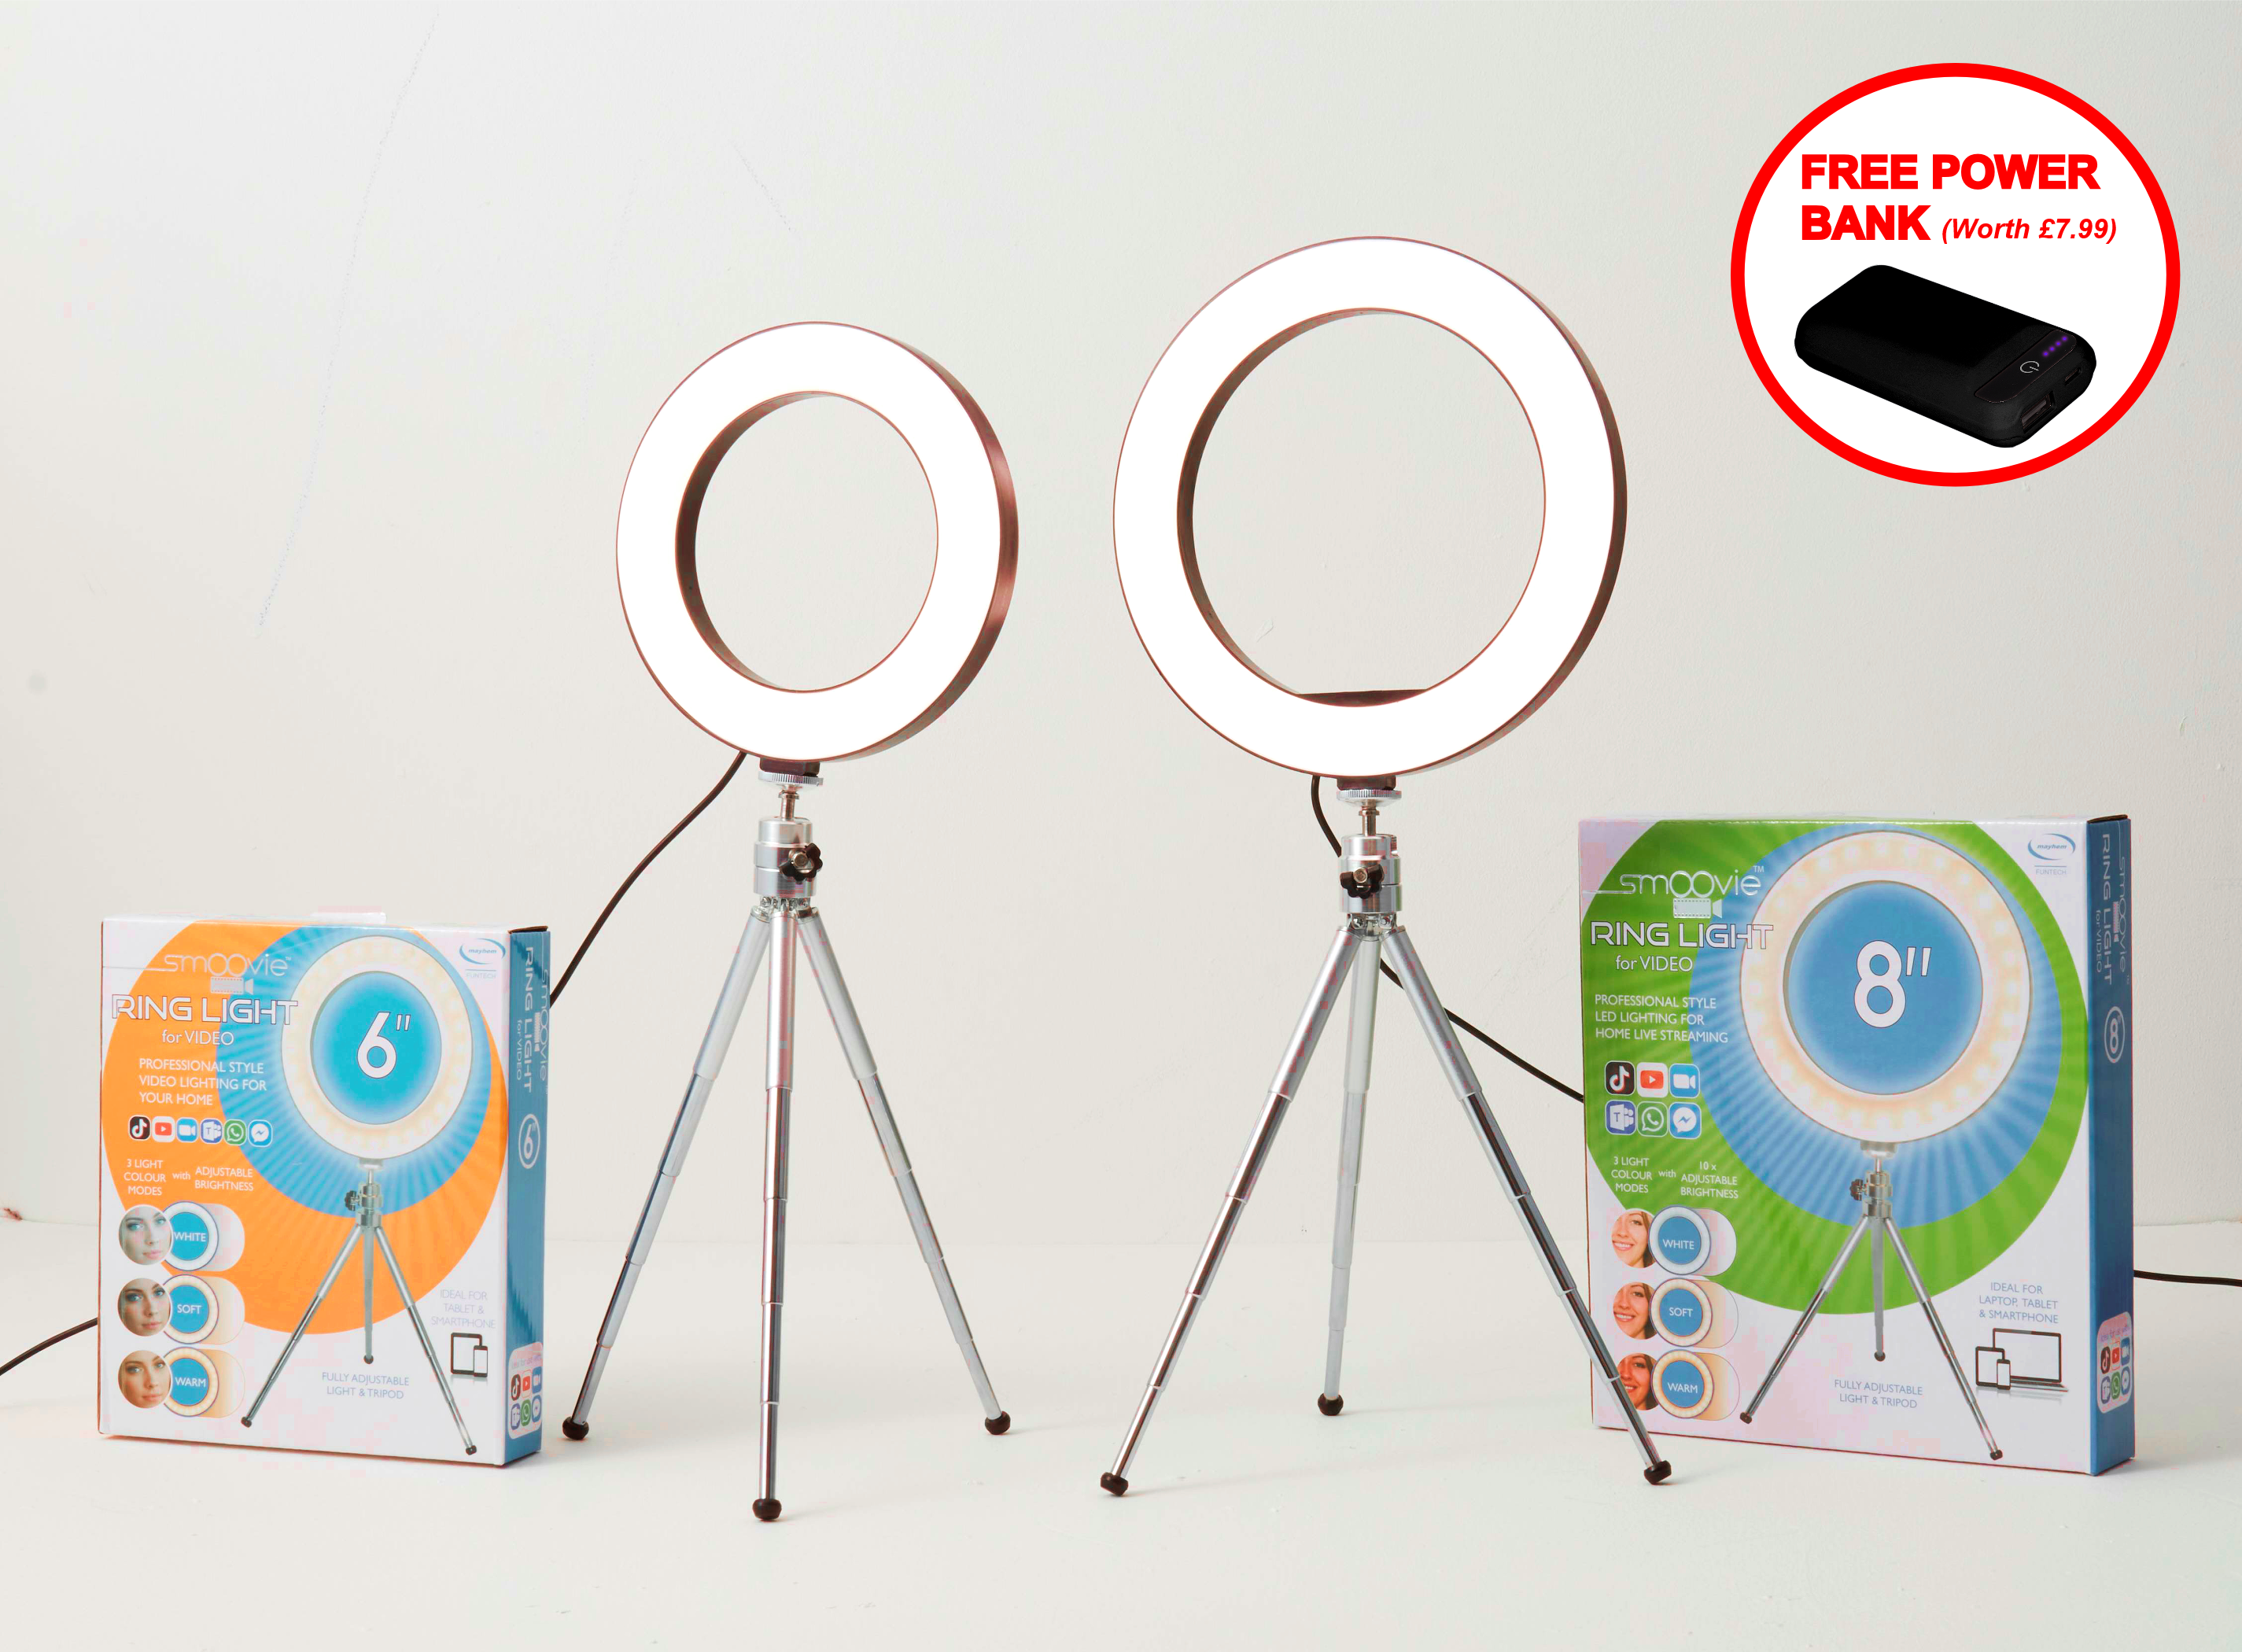 ring light special offers